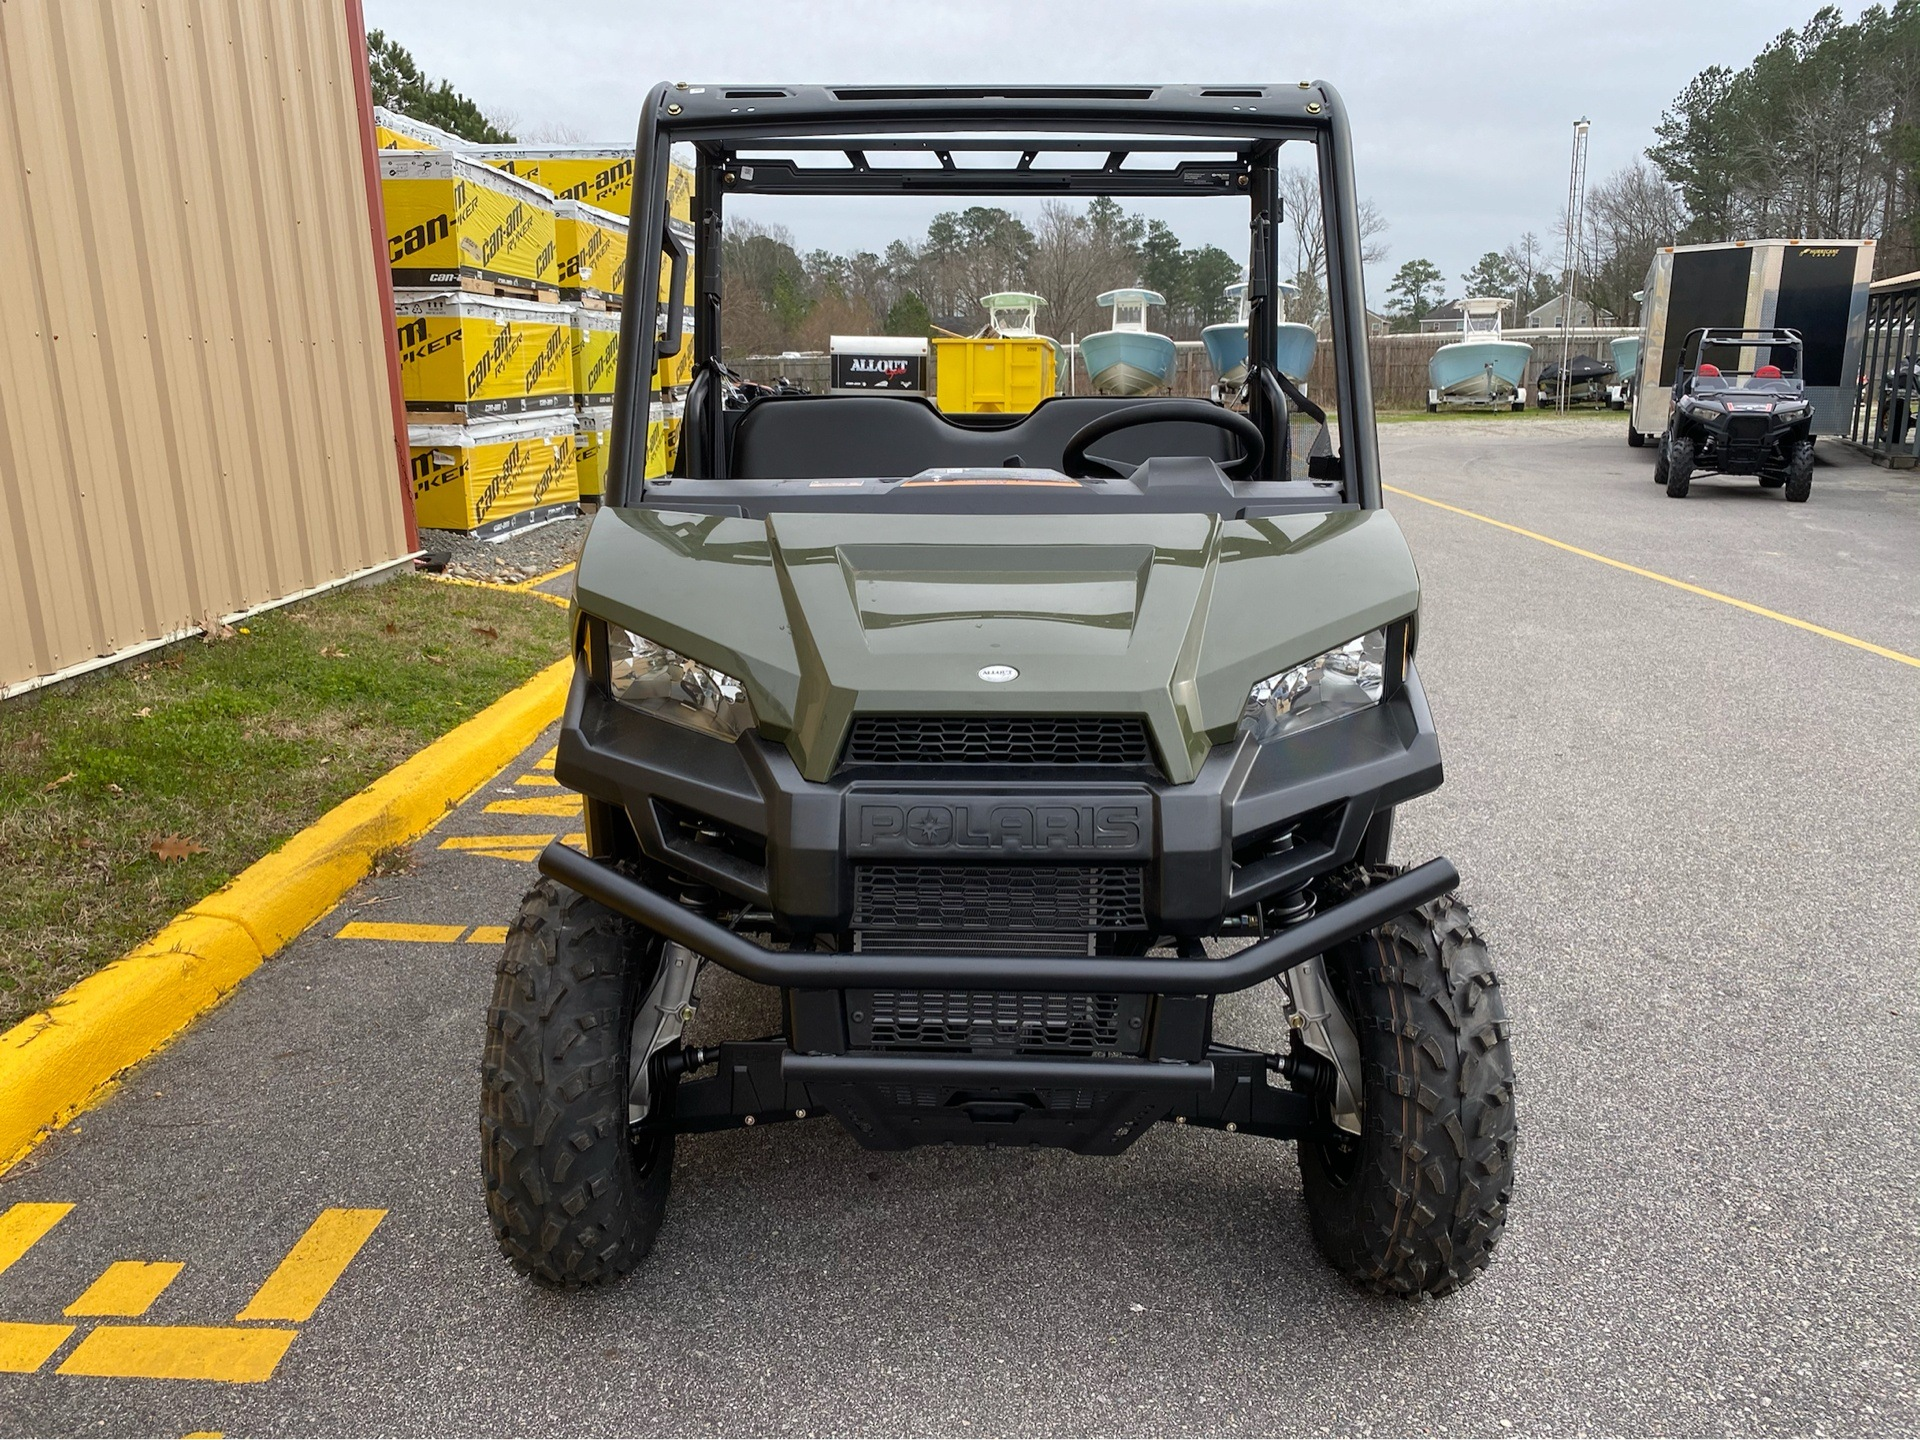 2020 Polaris Ranger 570 in Chesapeake, Virginia - Photo 2